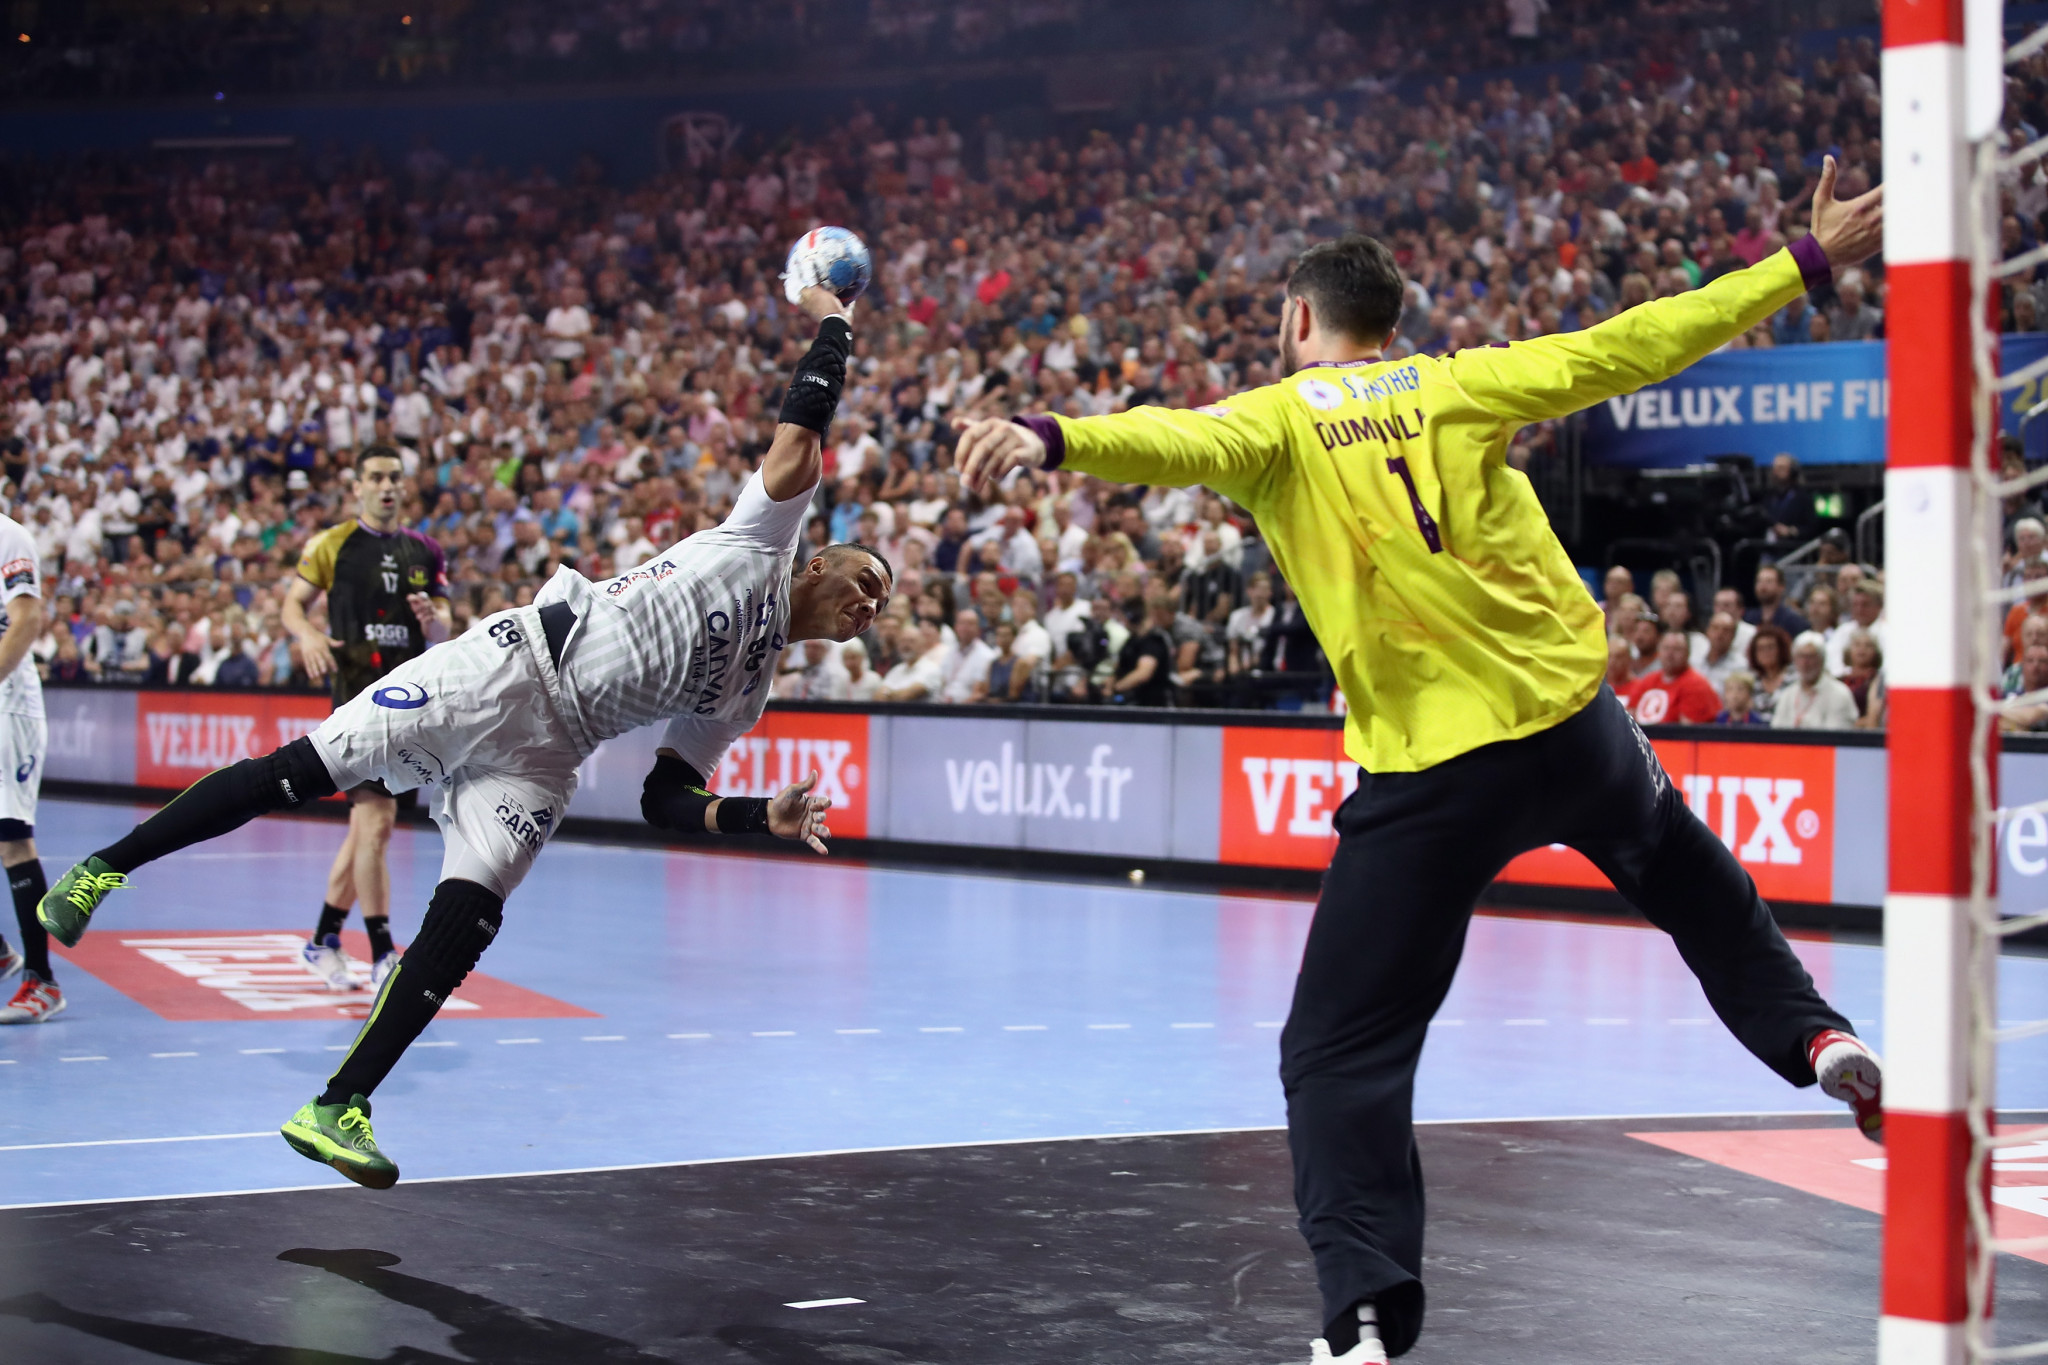 Sixteen teams will compete in the men's EHF Champions League from the 2020/2021 season rather than the current twenty four teams ©Getty Images